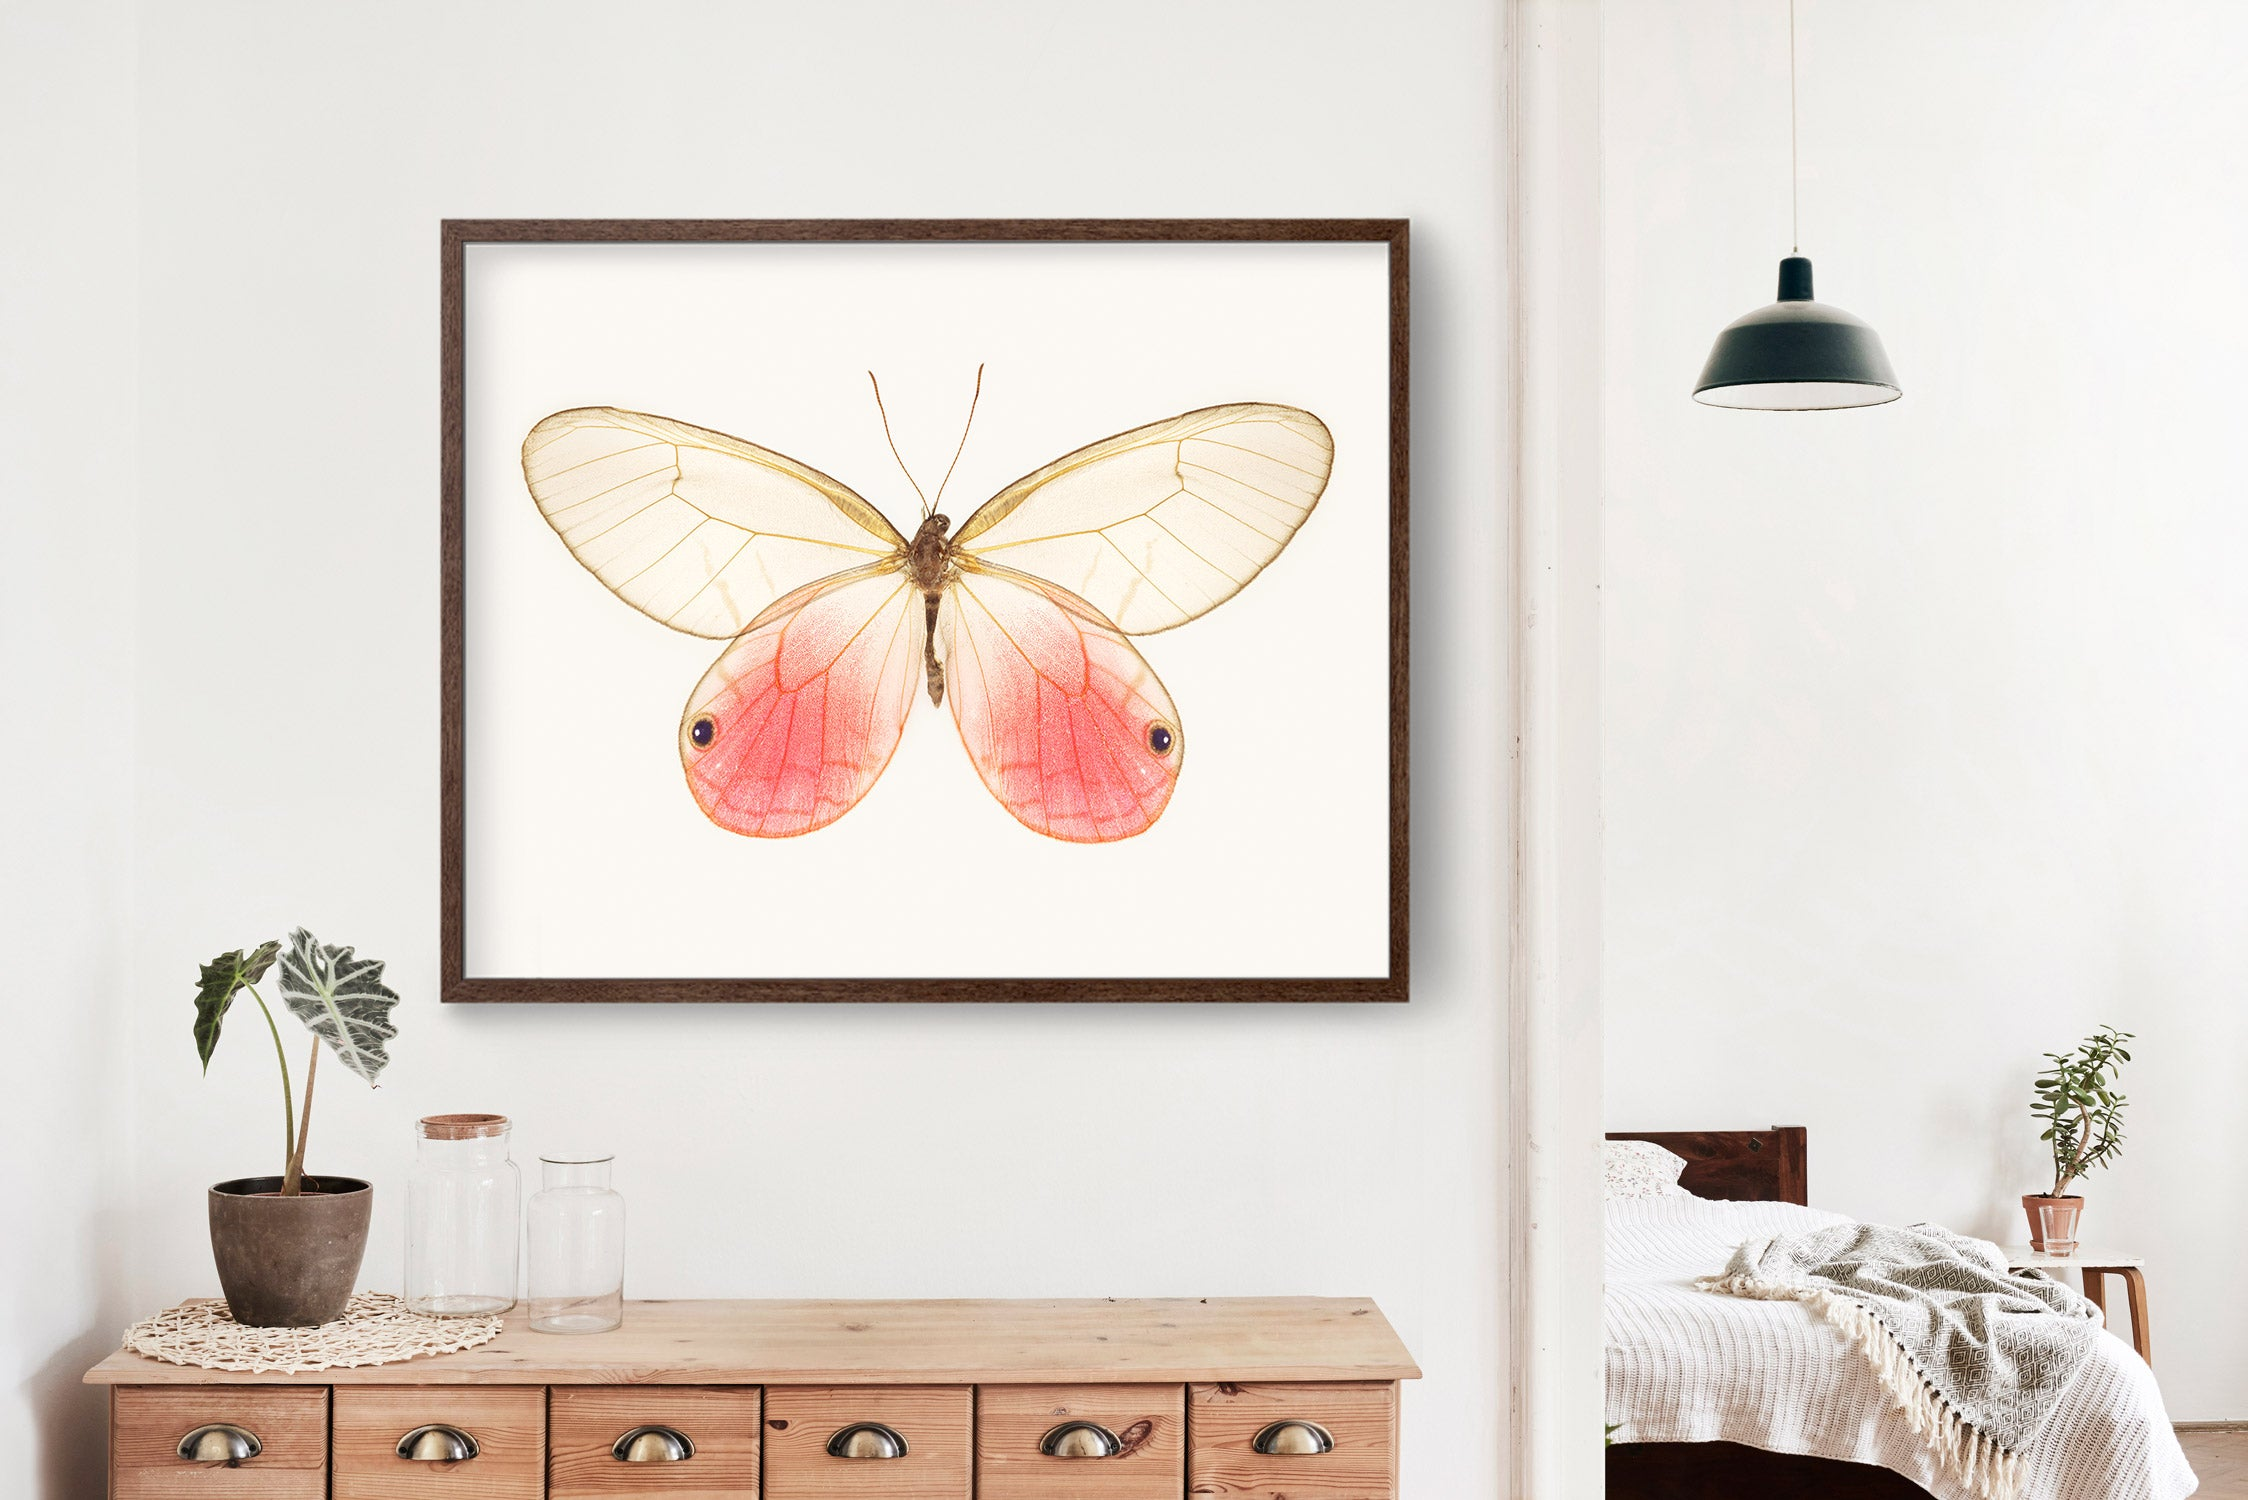 Butterfly No. 1 - the Pink Glasswing Butterfly